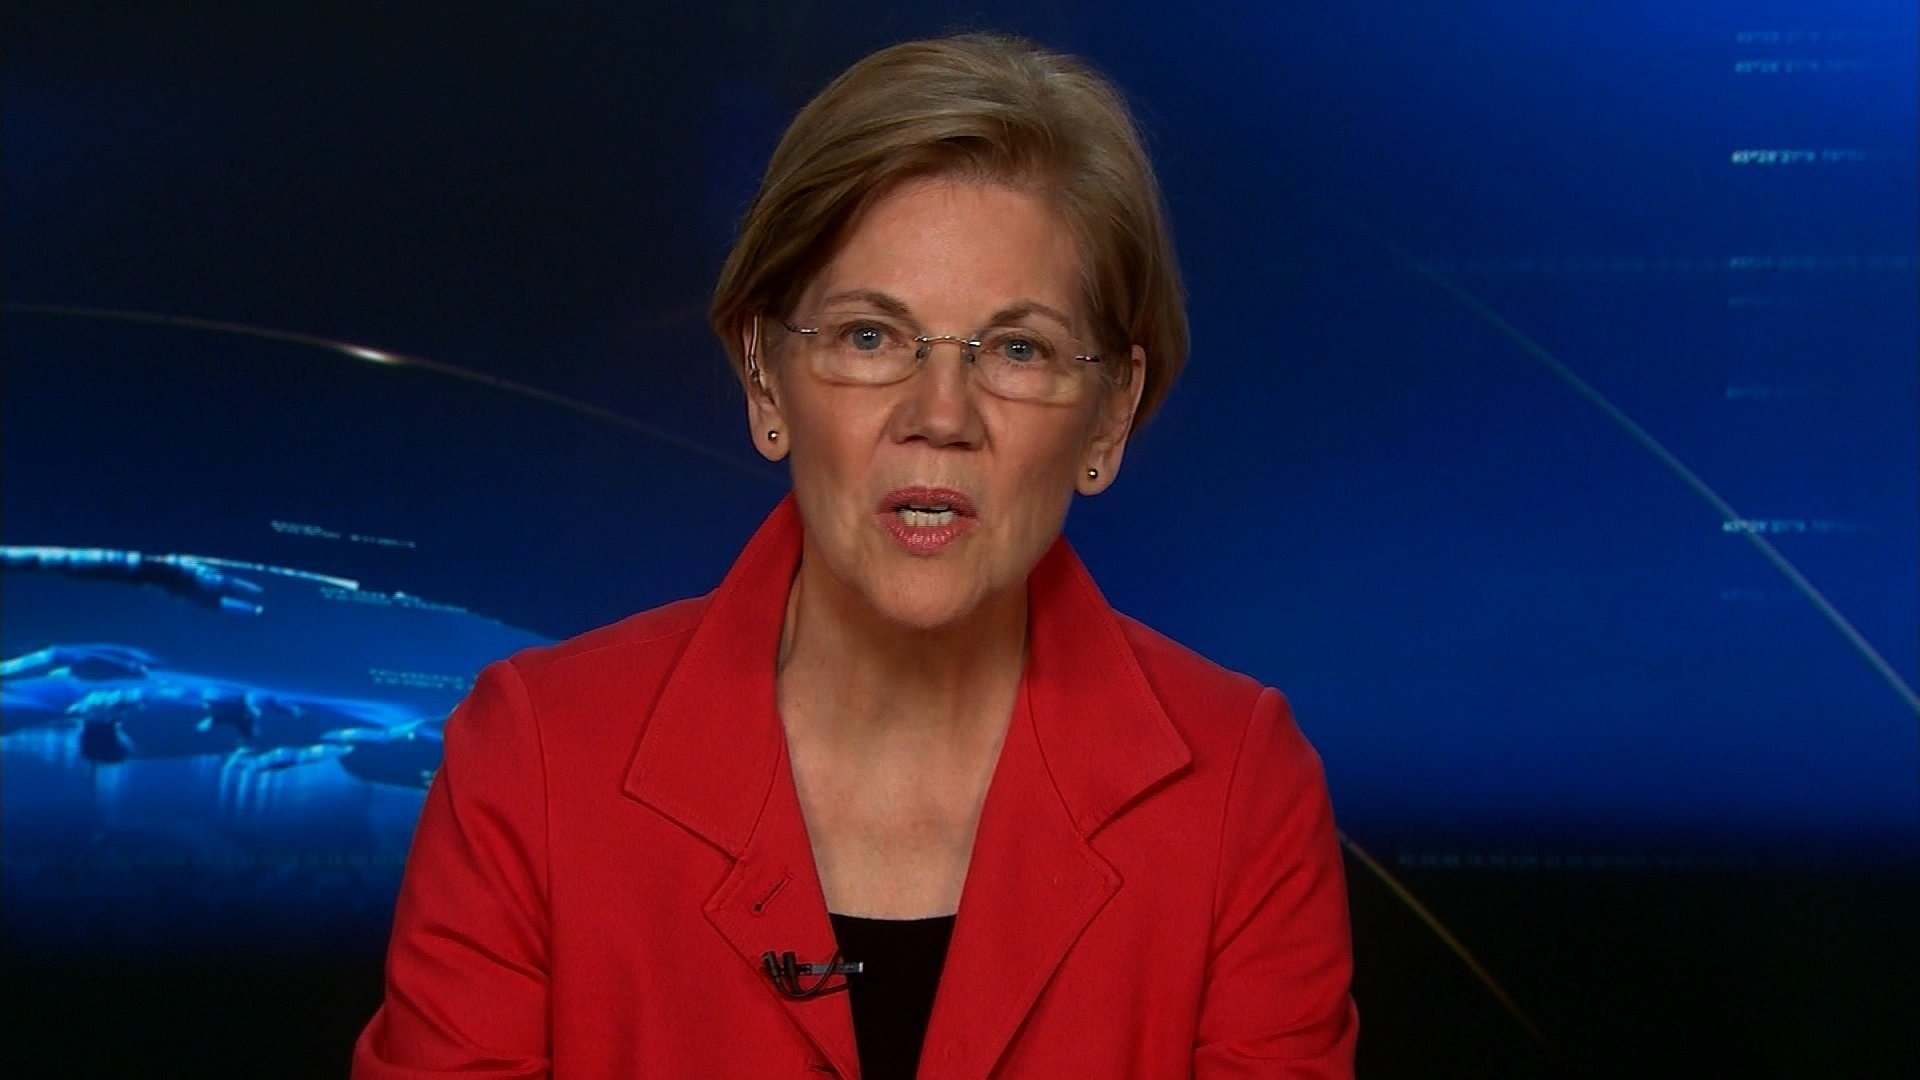 Elizabeth Warren rejects DNA test to settle Native American heritage claim